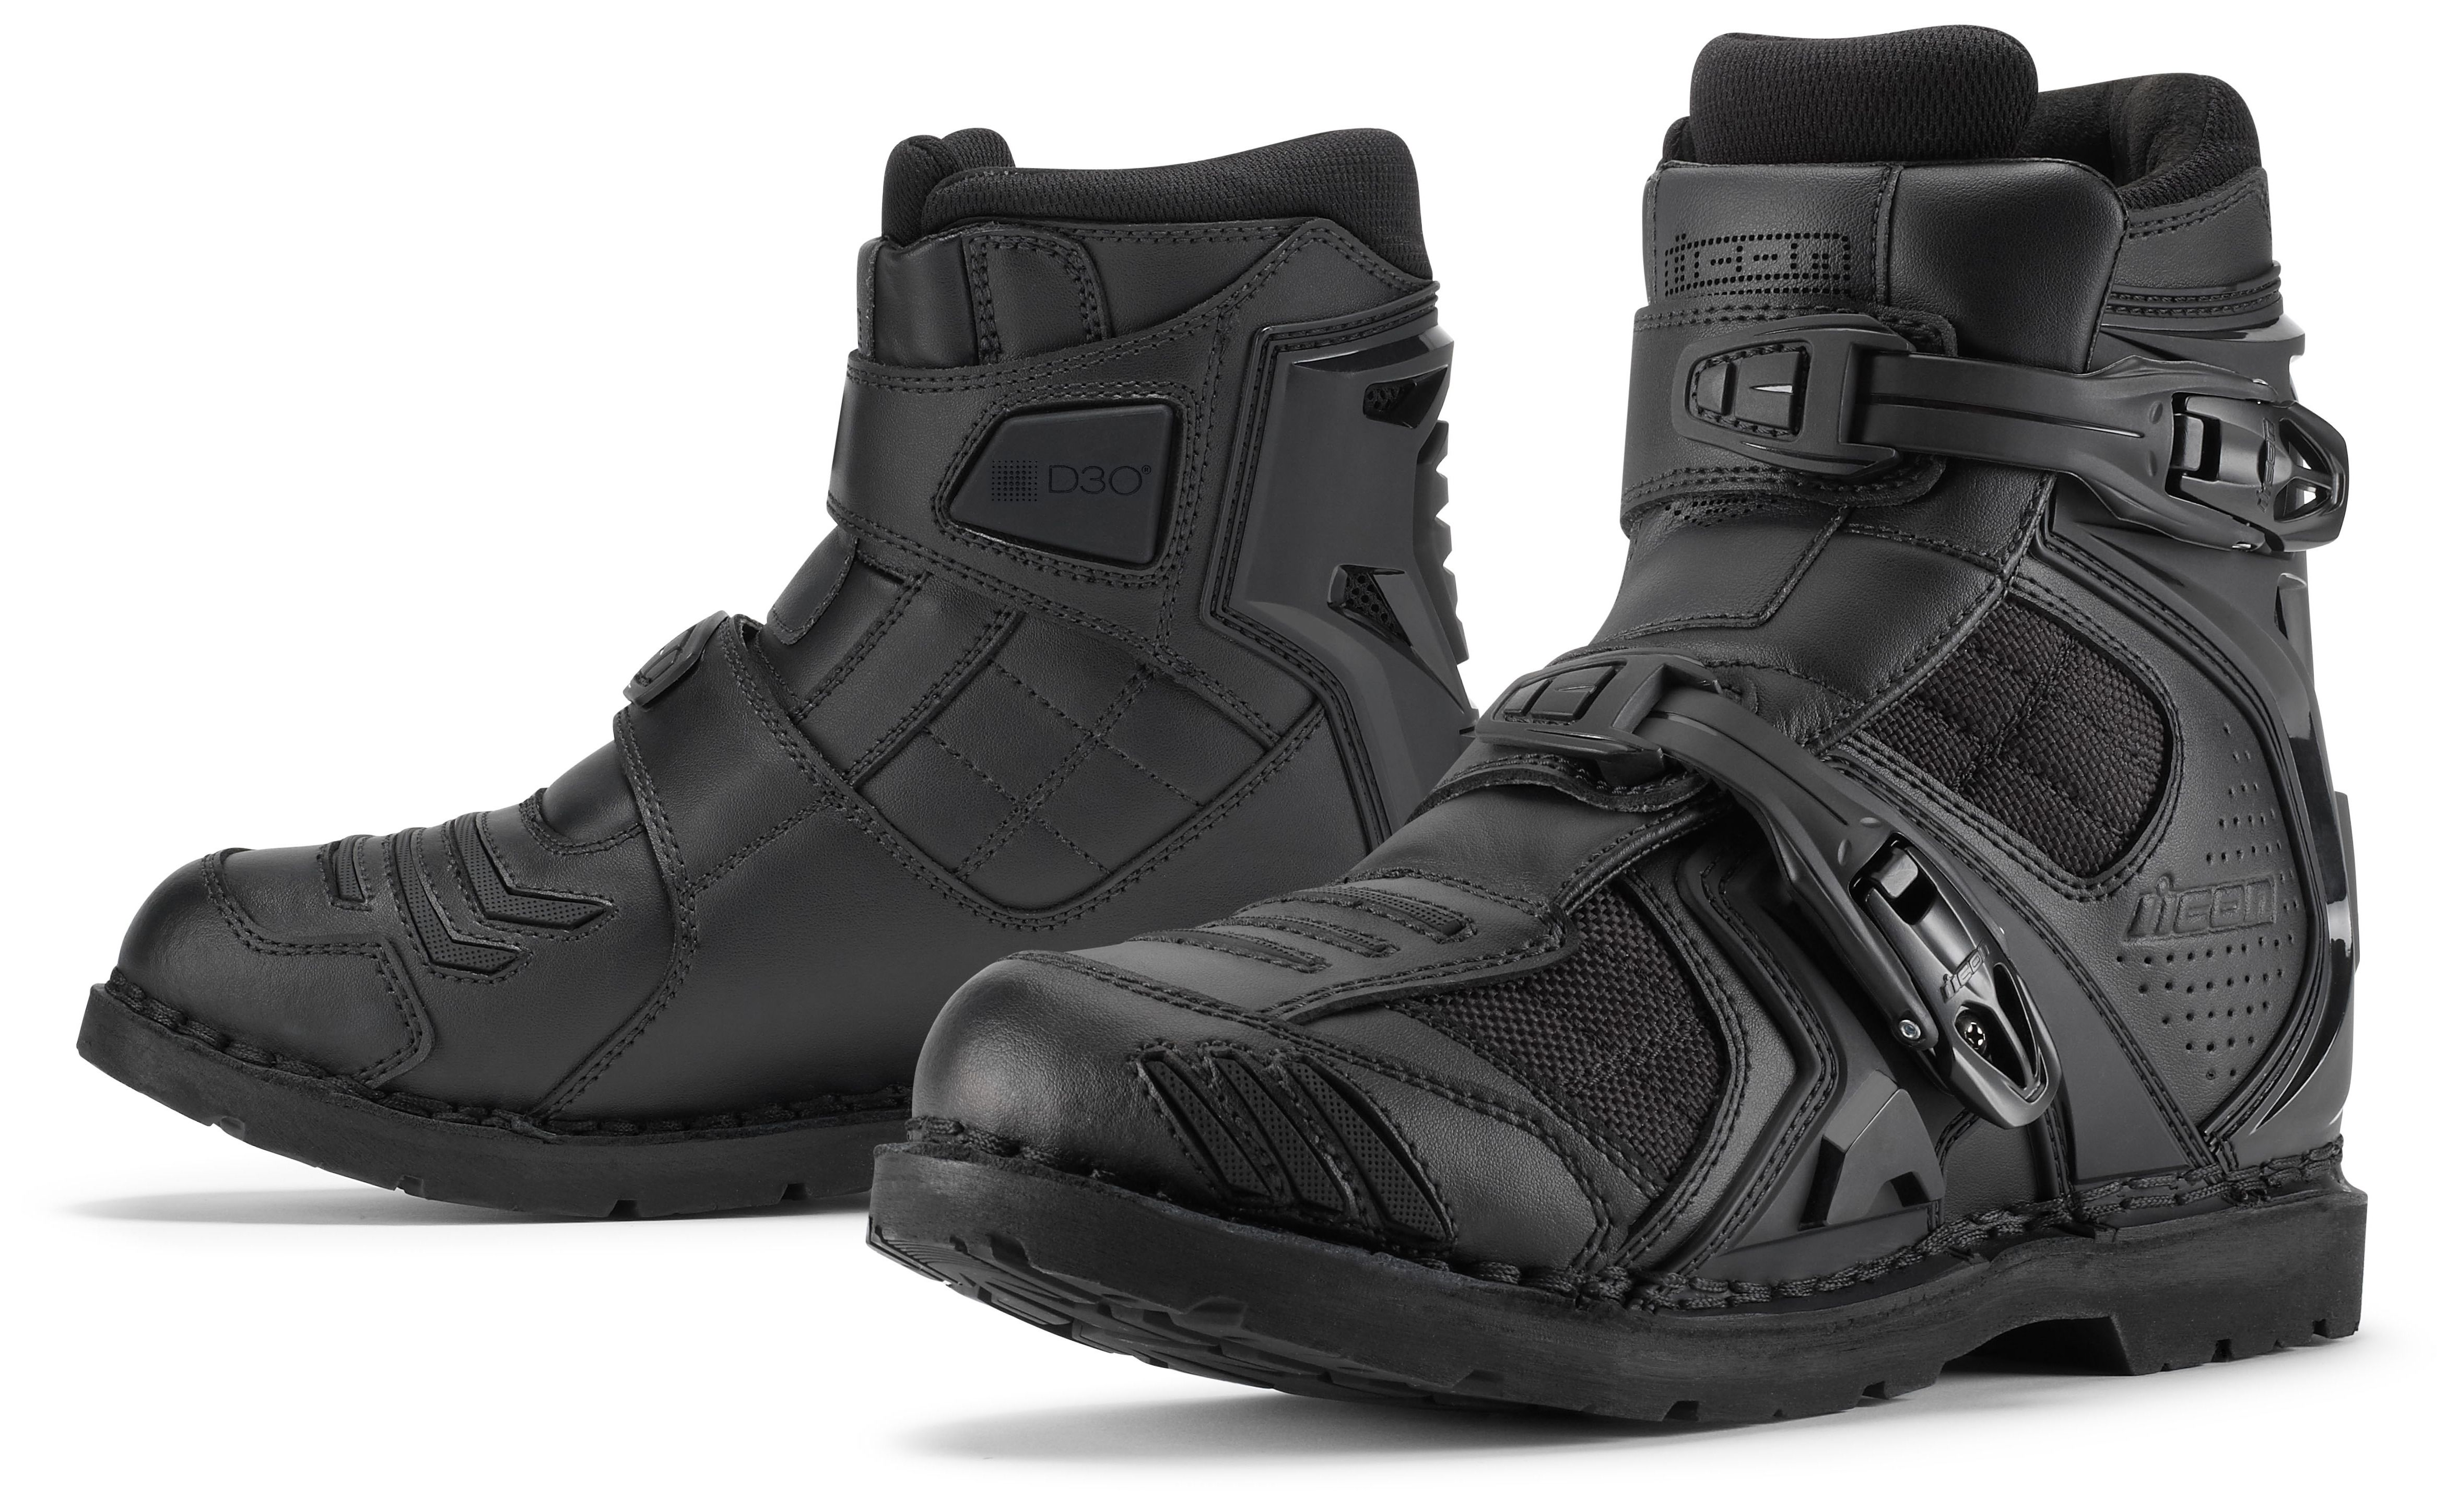 Icon Field Armor 2 Boots Cycle Gear